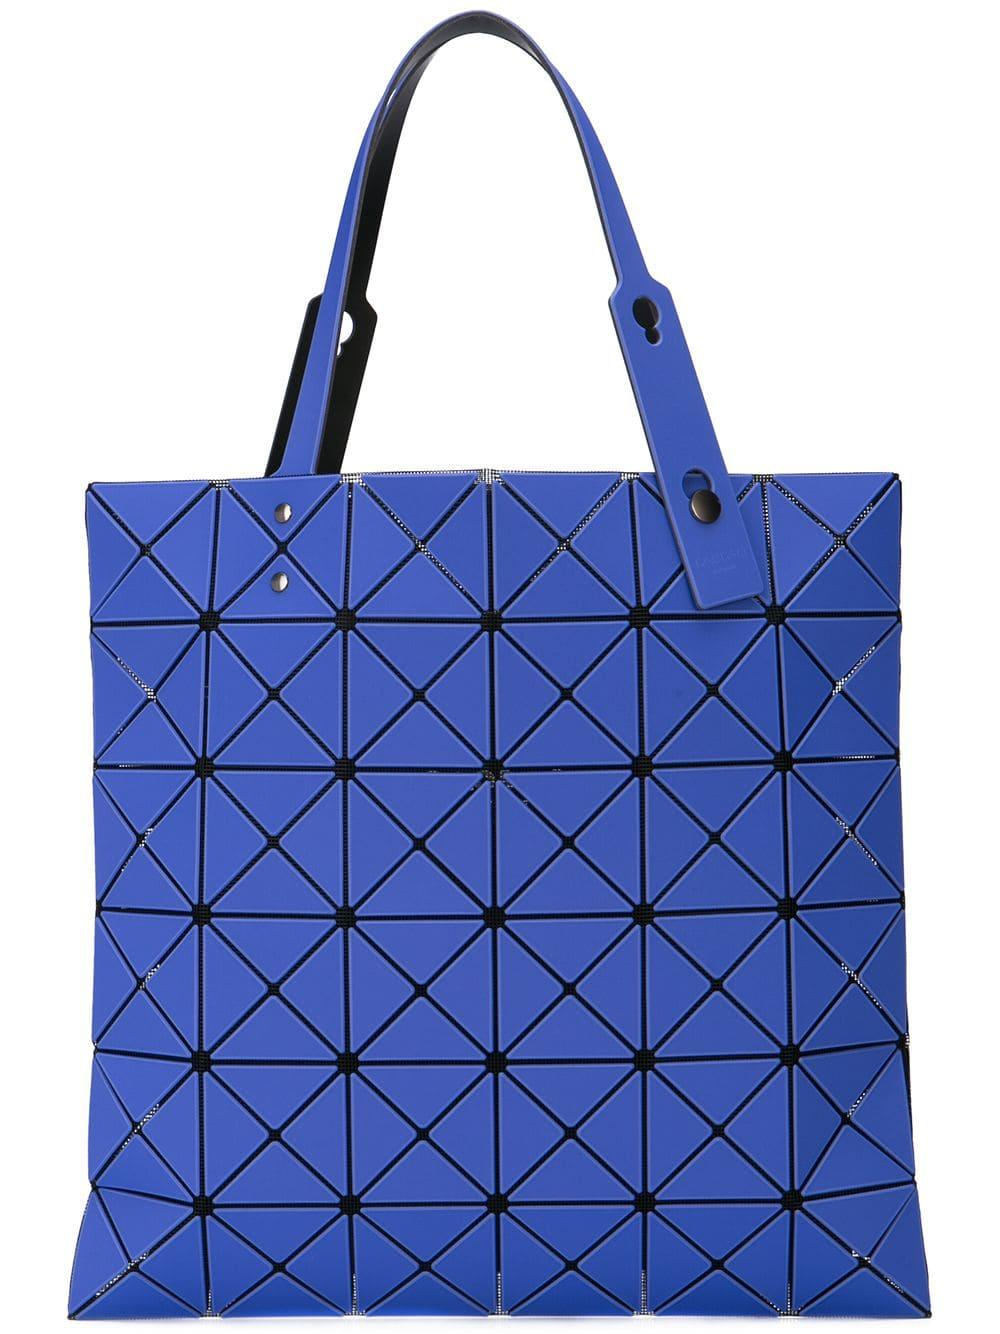 e569eb4eec Bao Bao Issey Miyake Lucent Frost Tote Bag in Blue - Lyst